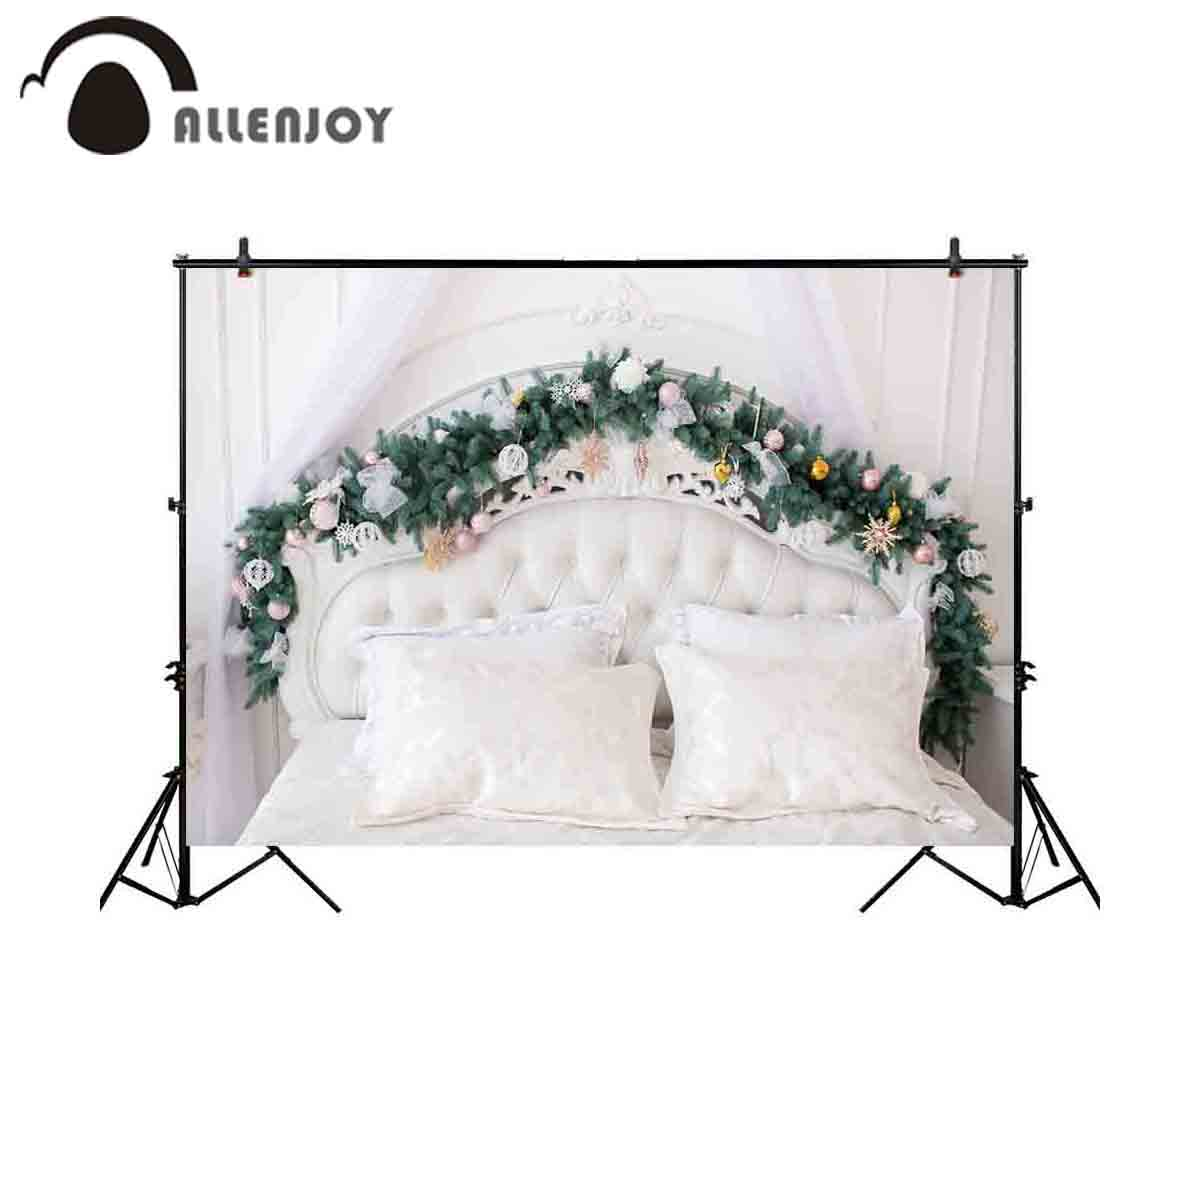 Allenjoy photography background Christmas headboard tufted pine tree leaf backdrop photocall photo studio photobooth fabric михаил родин эволюция музыкальной жизни